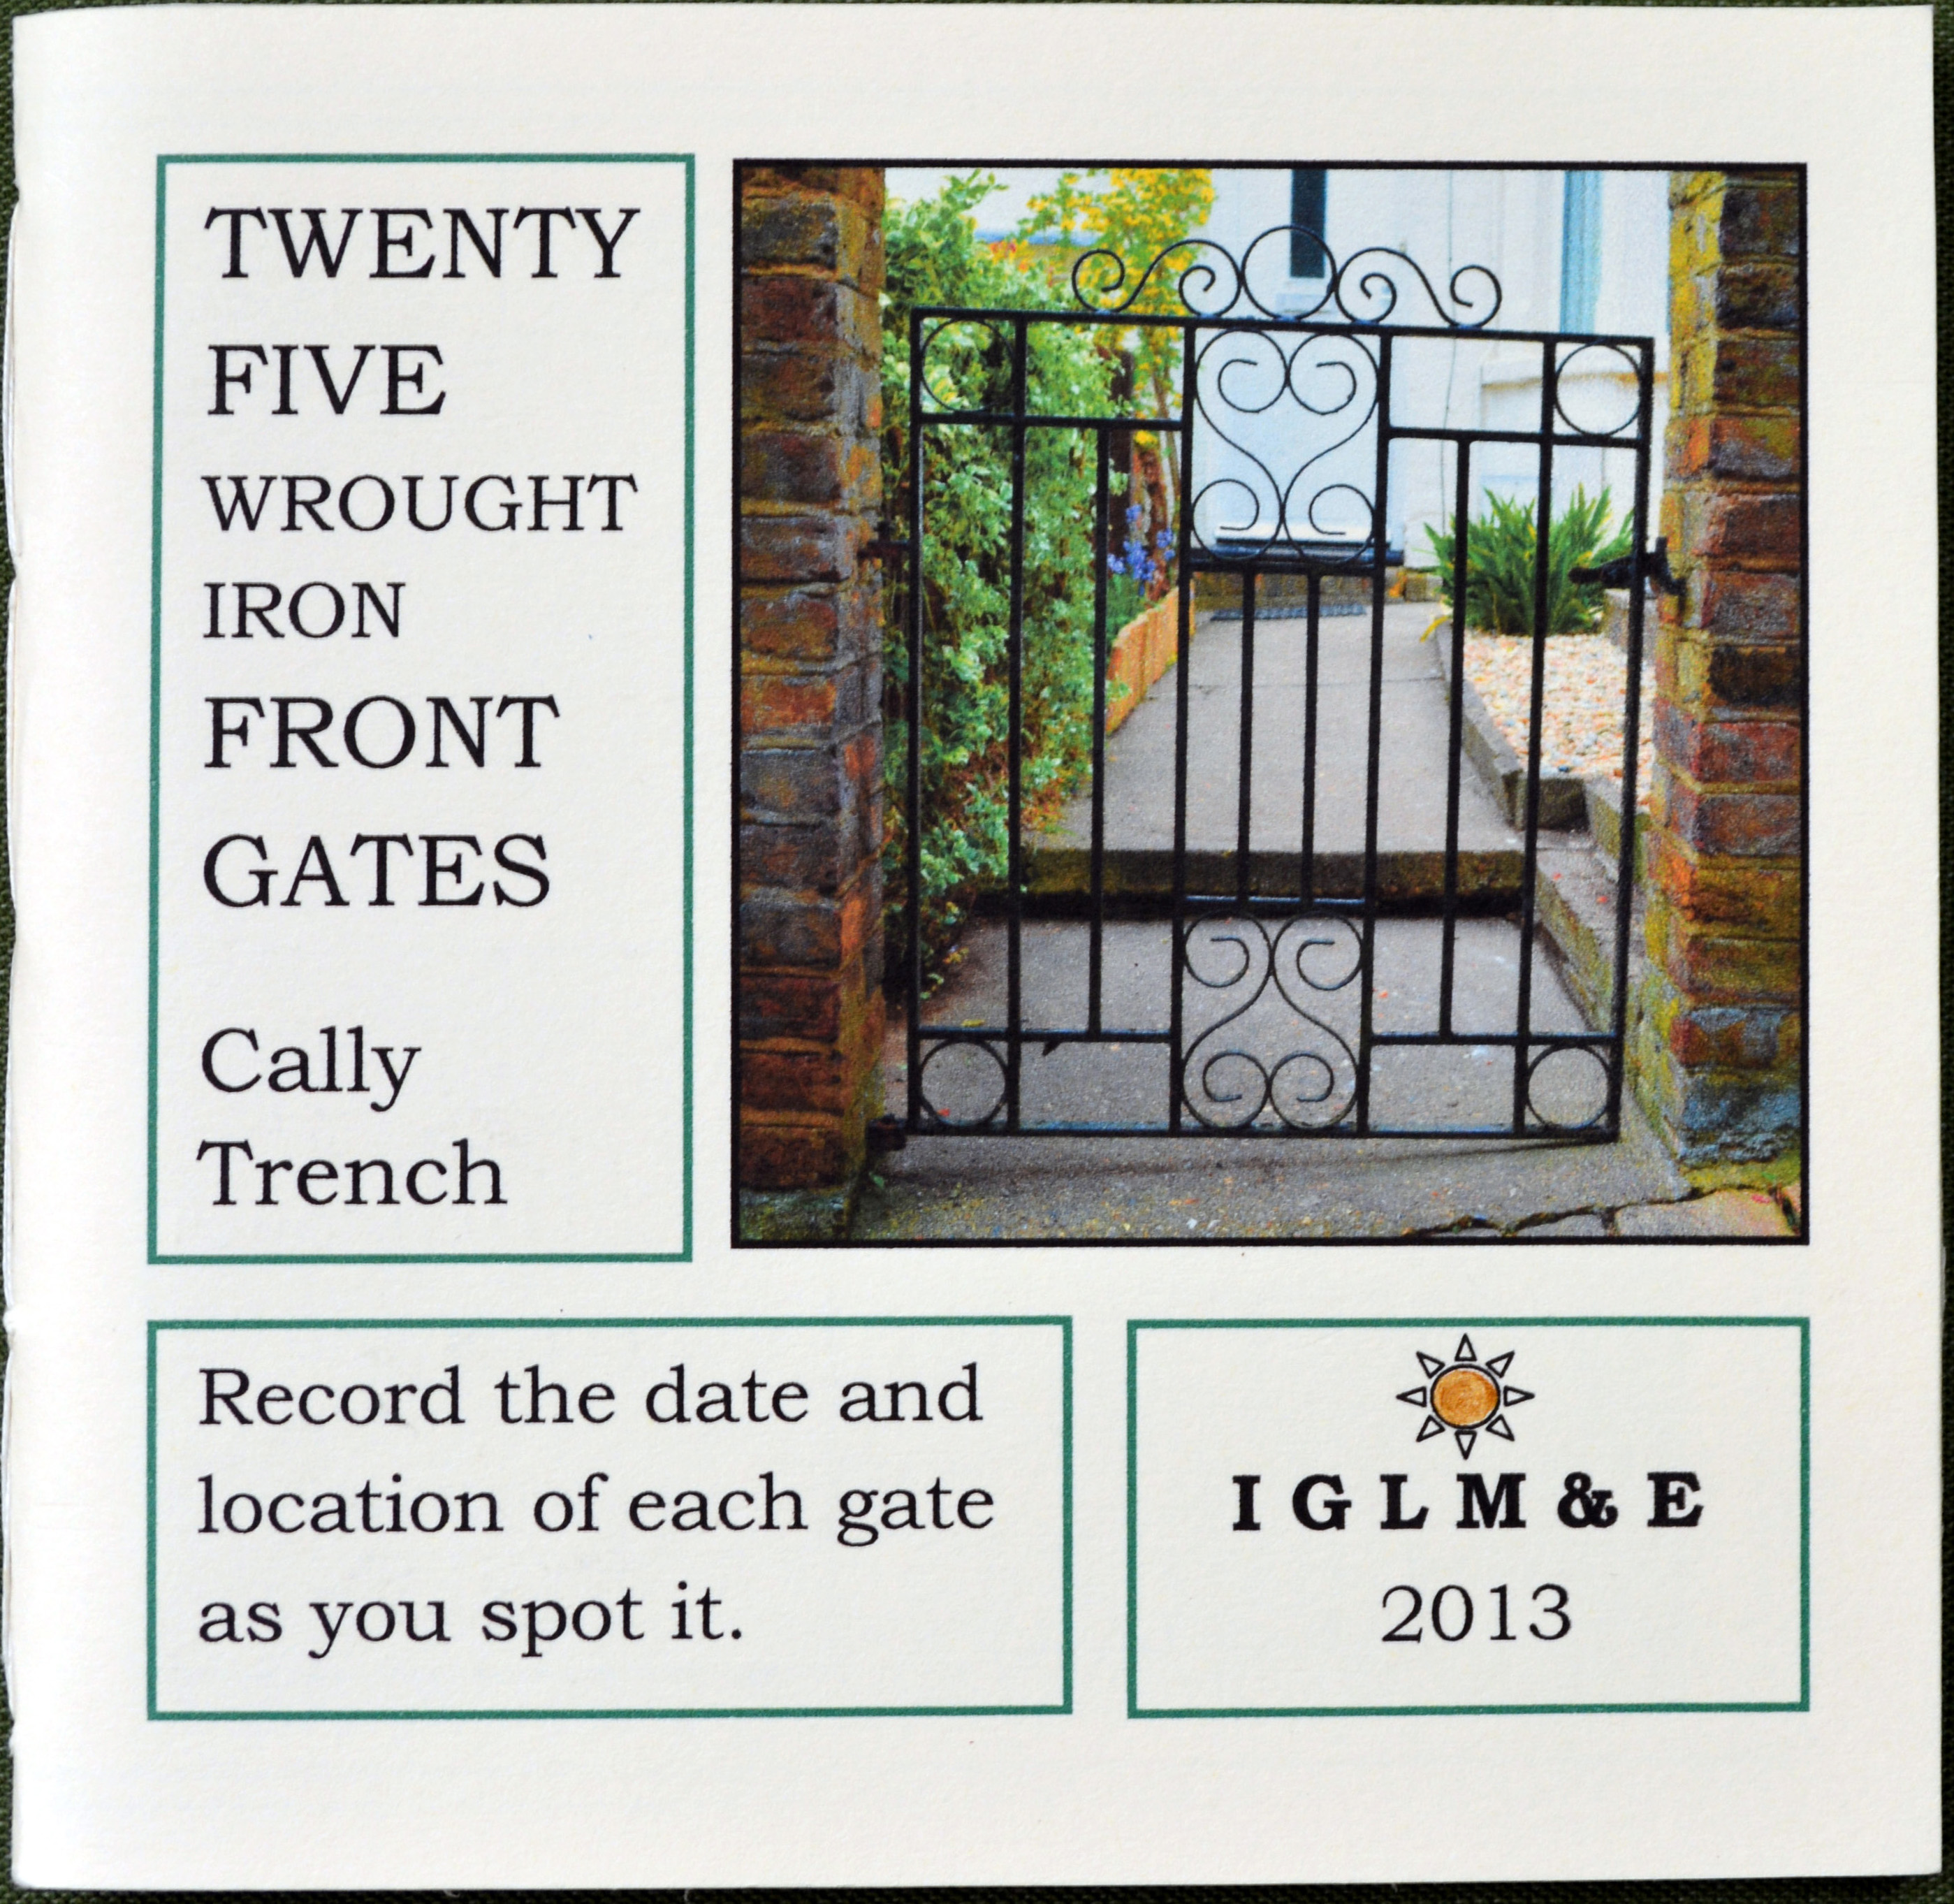 Cally Trench, Twenty-five Wrought Iron Front Gates (2013)